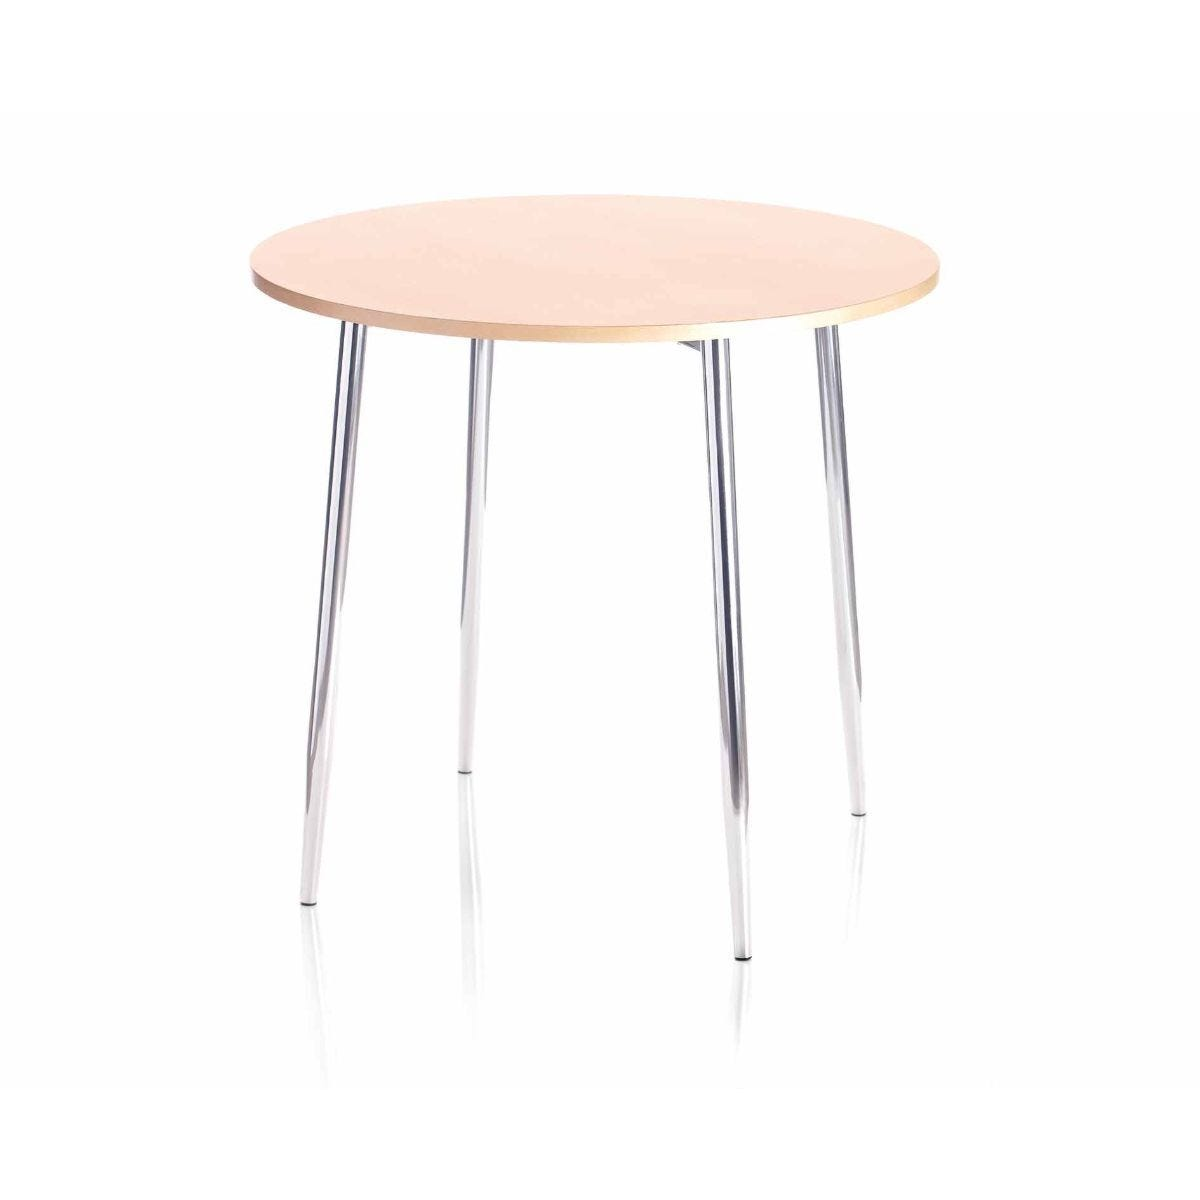 TC Office Ellipse Circular Table with Chrome Legs 800mm Beech